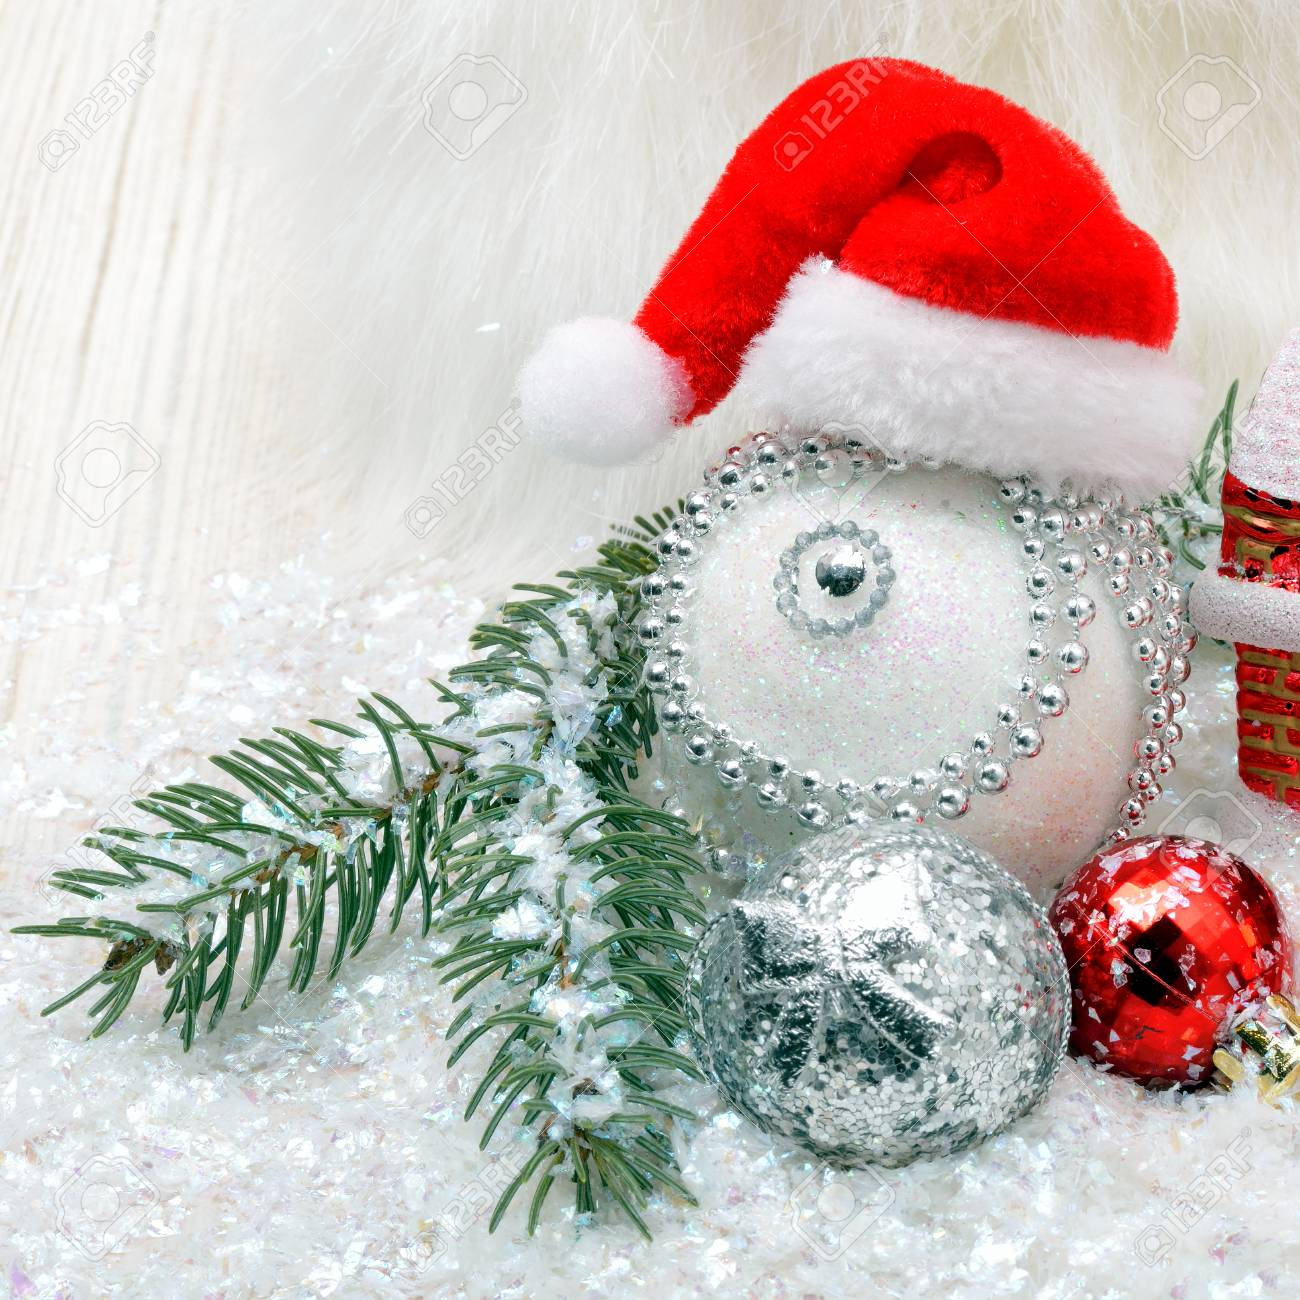 Christmas background with snow, christmas baubles and pine twigs - 90739474